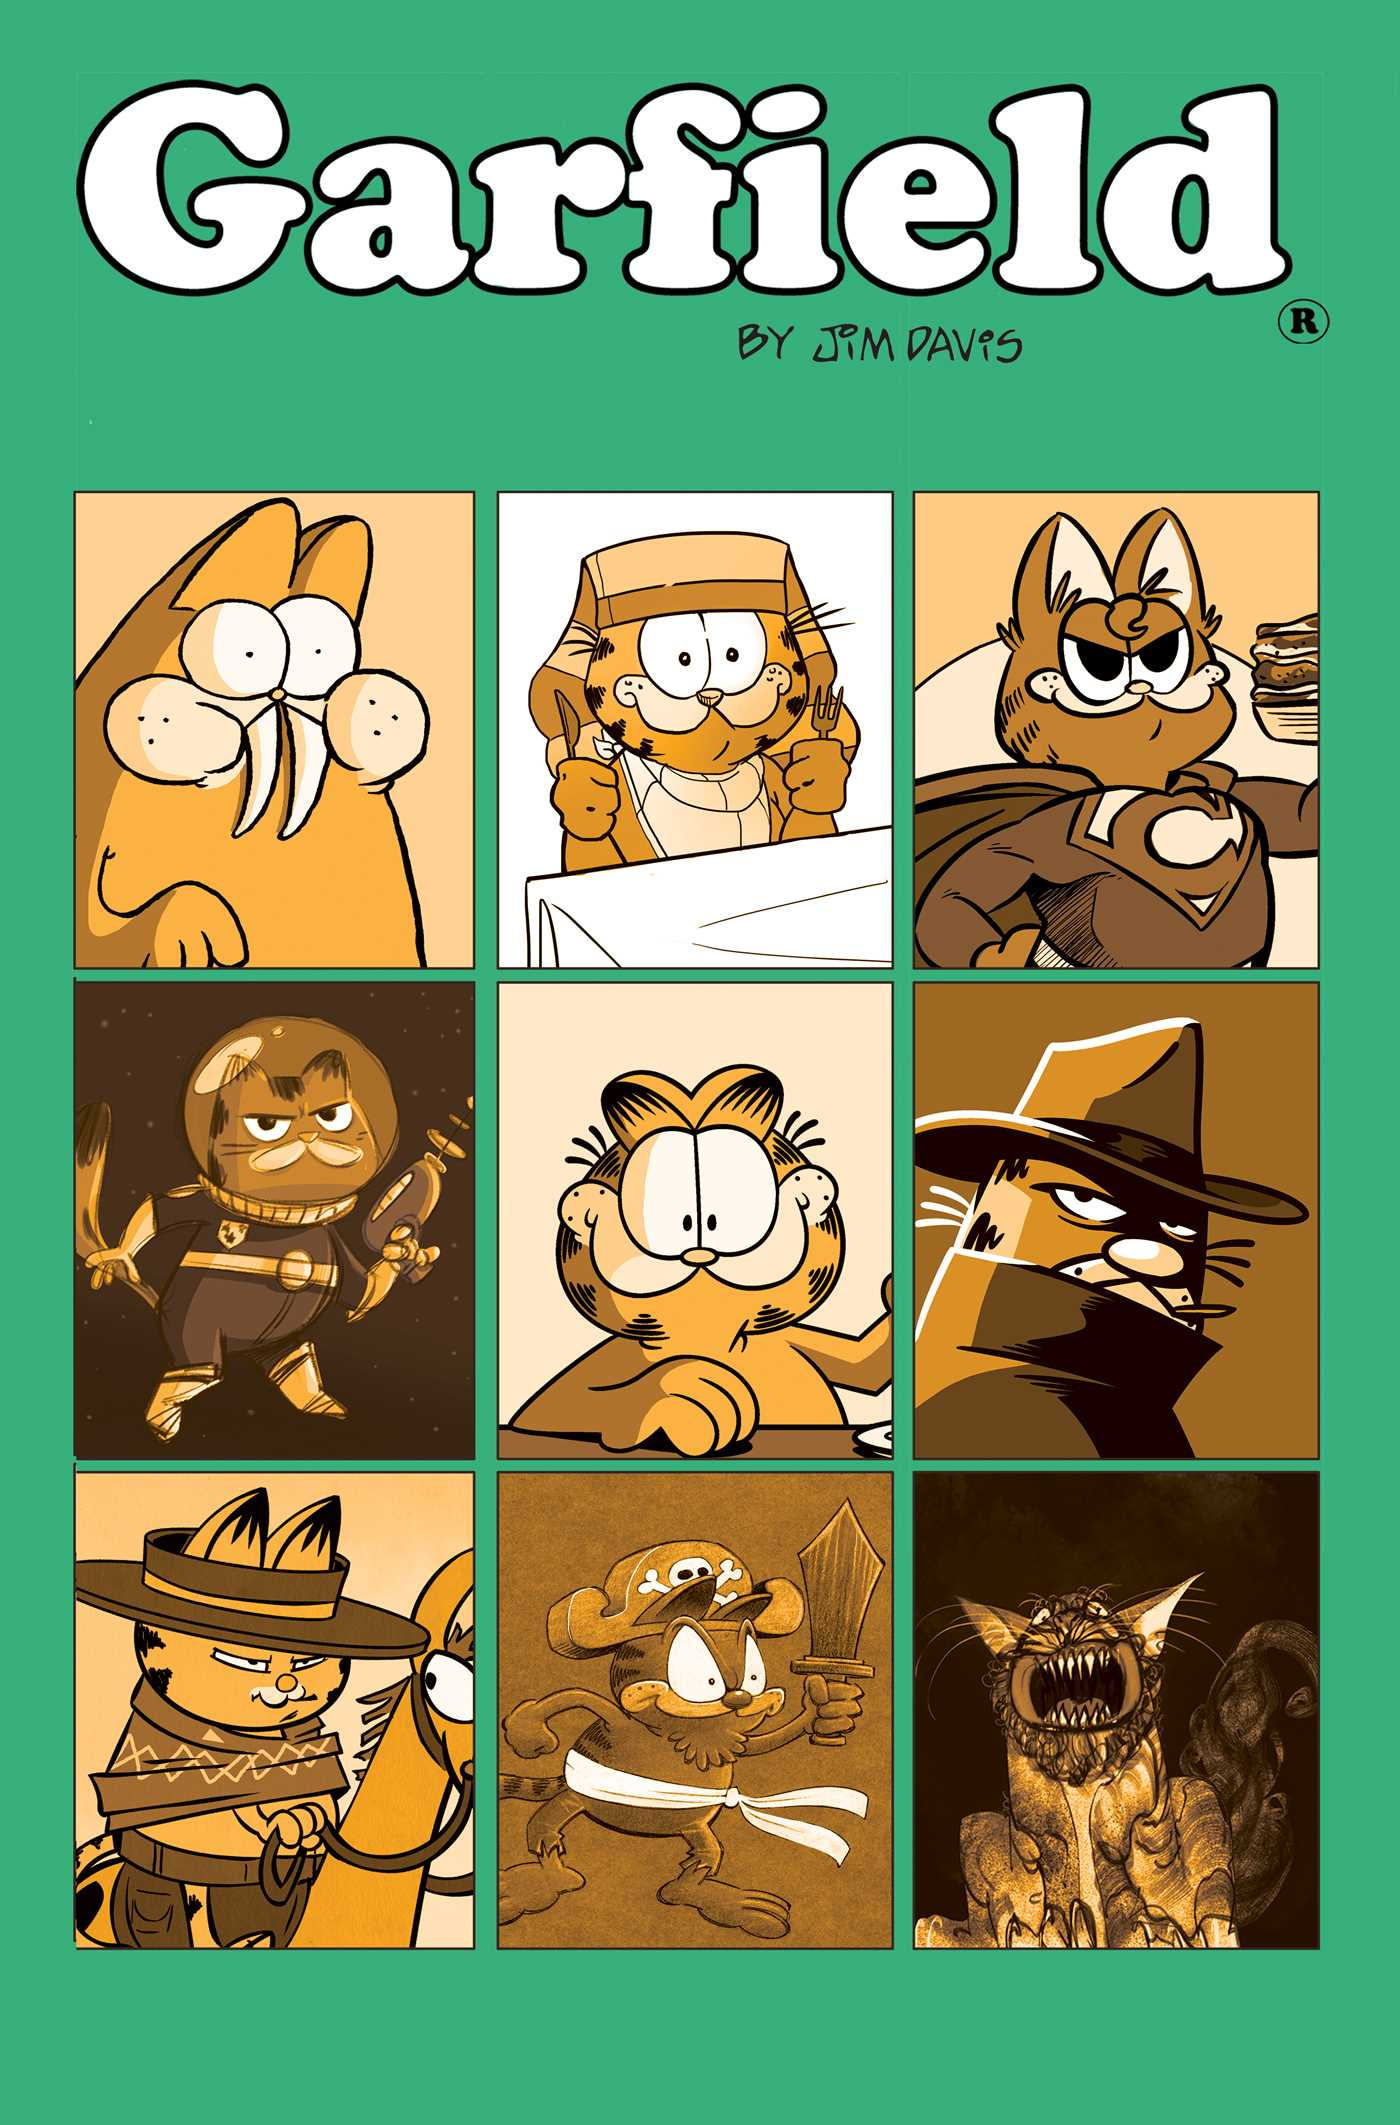 Garfield Vol. 9: His Nine Lives (Book #9 of Garfield) By Scott Nickel